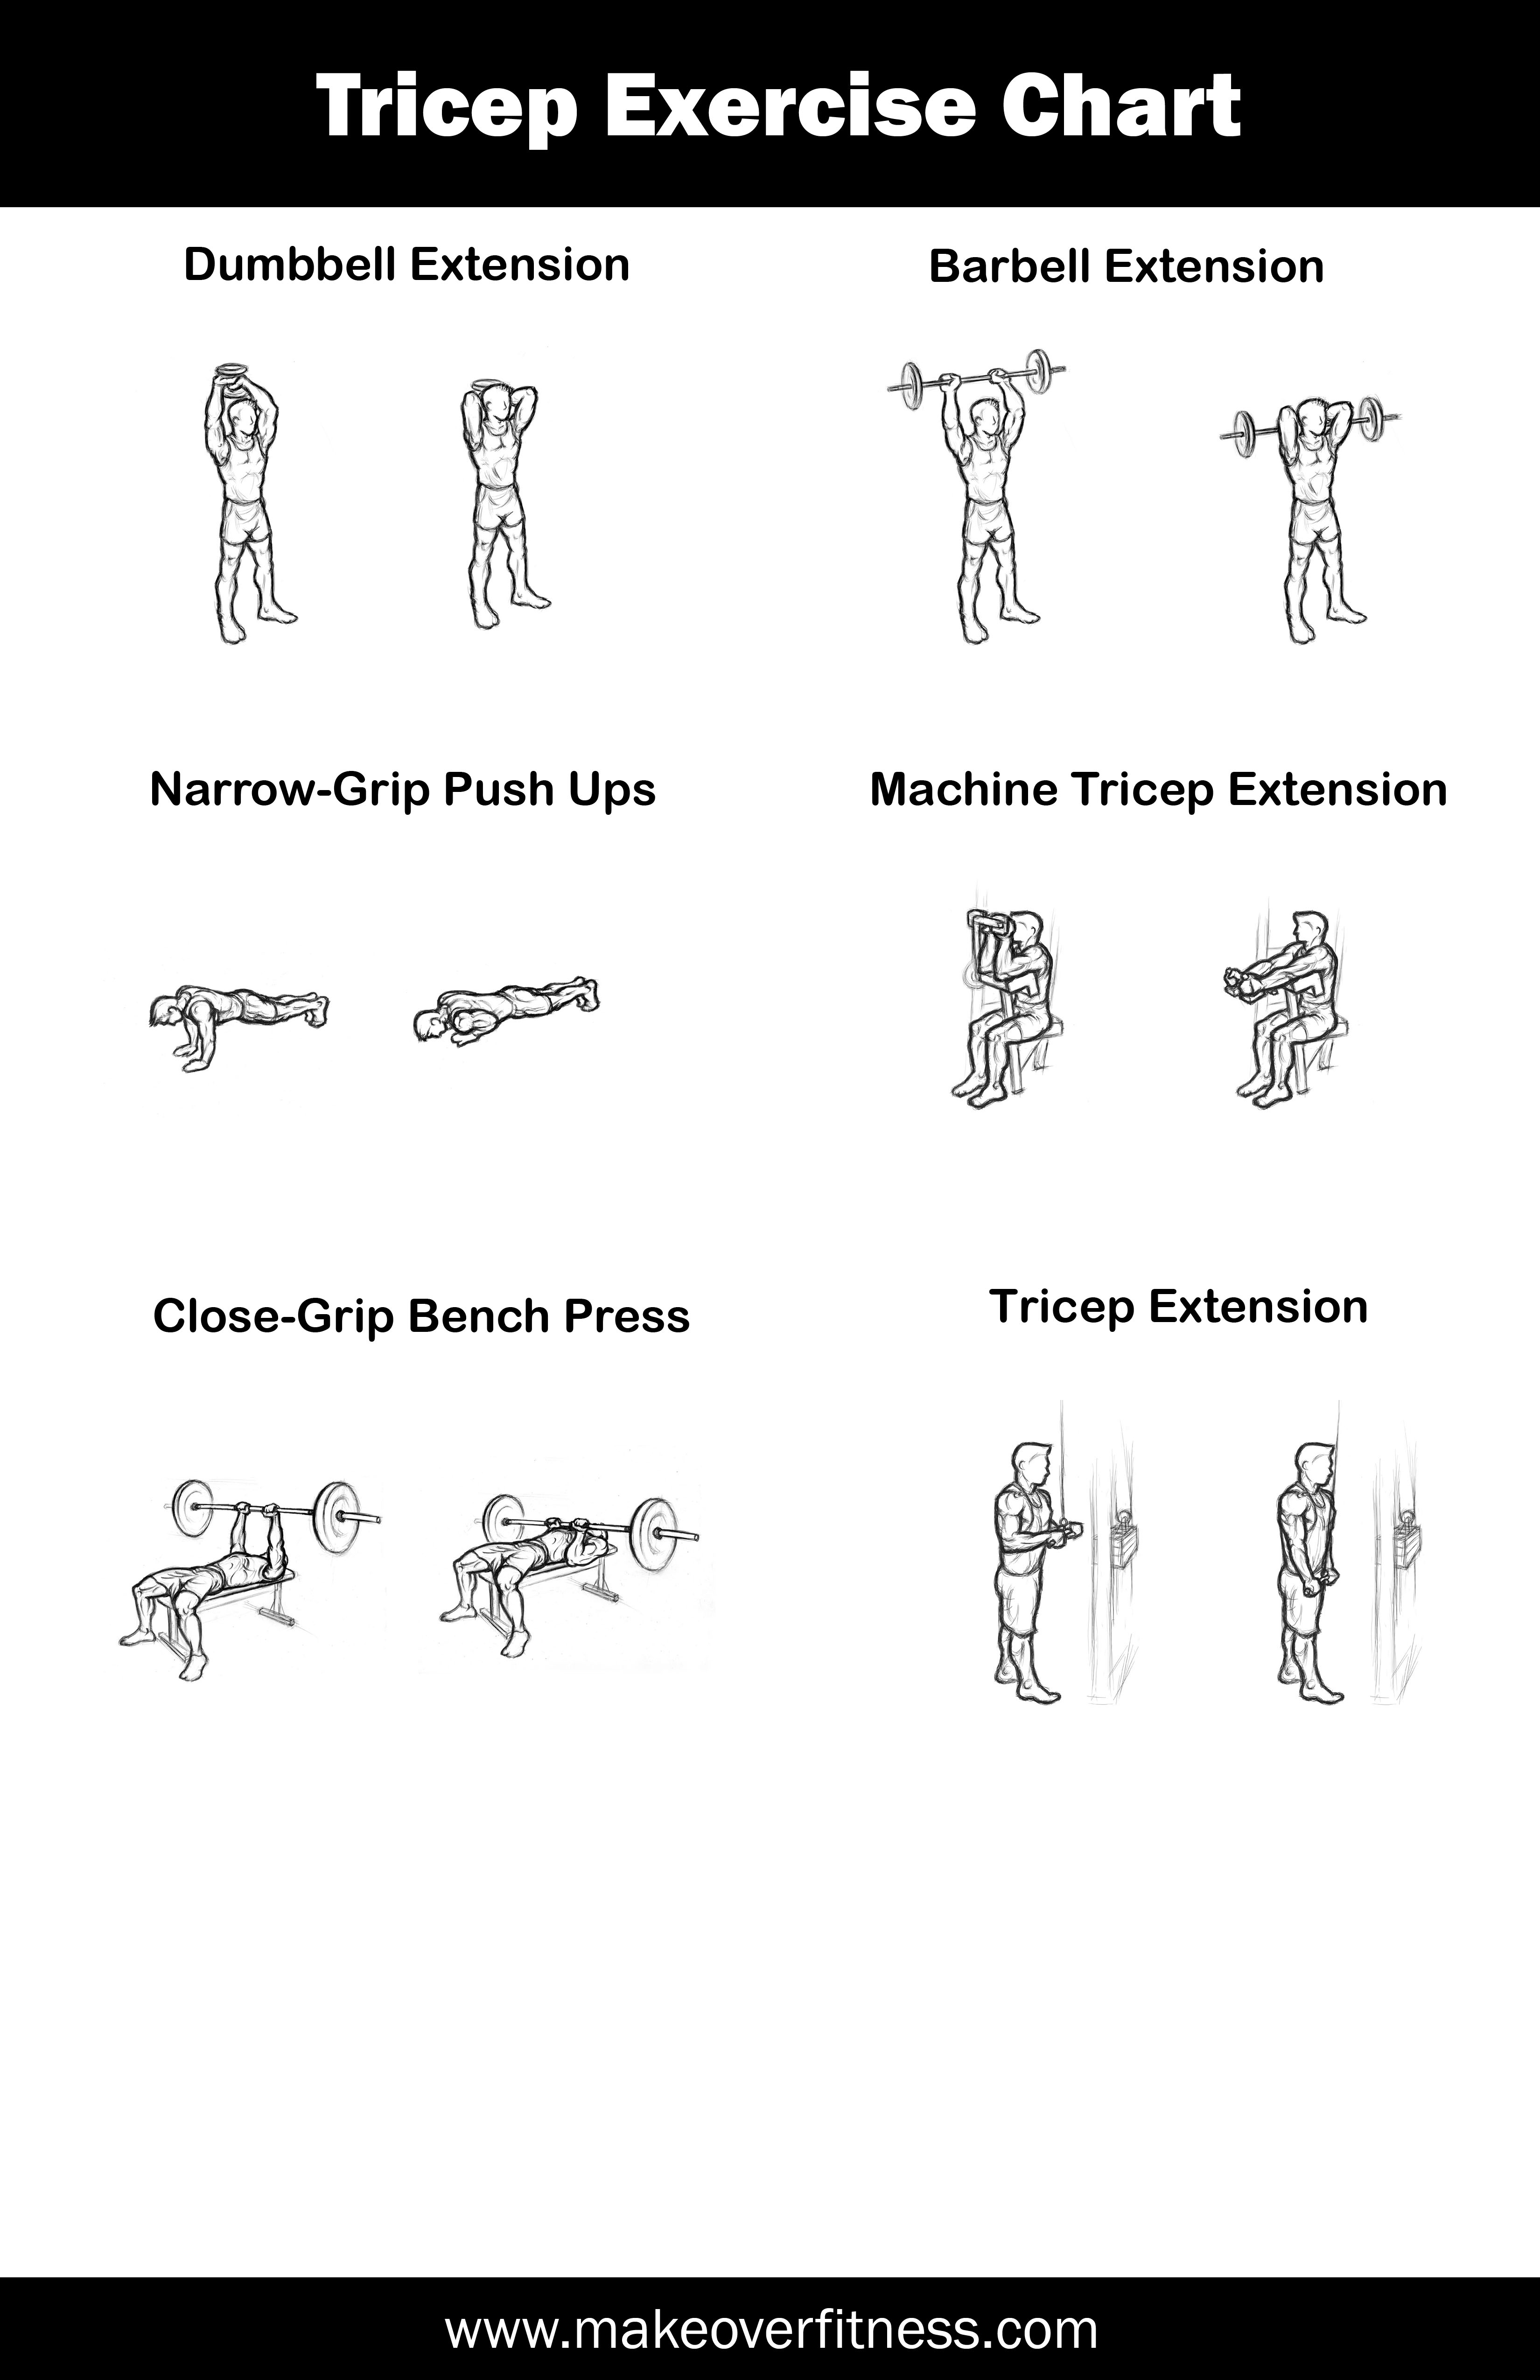 Tricep Exercise Charts